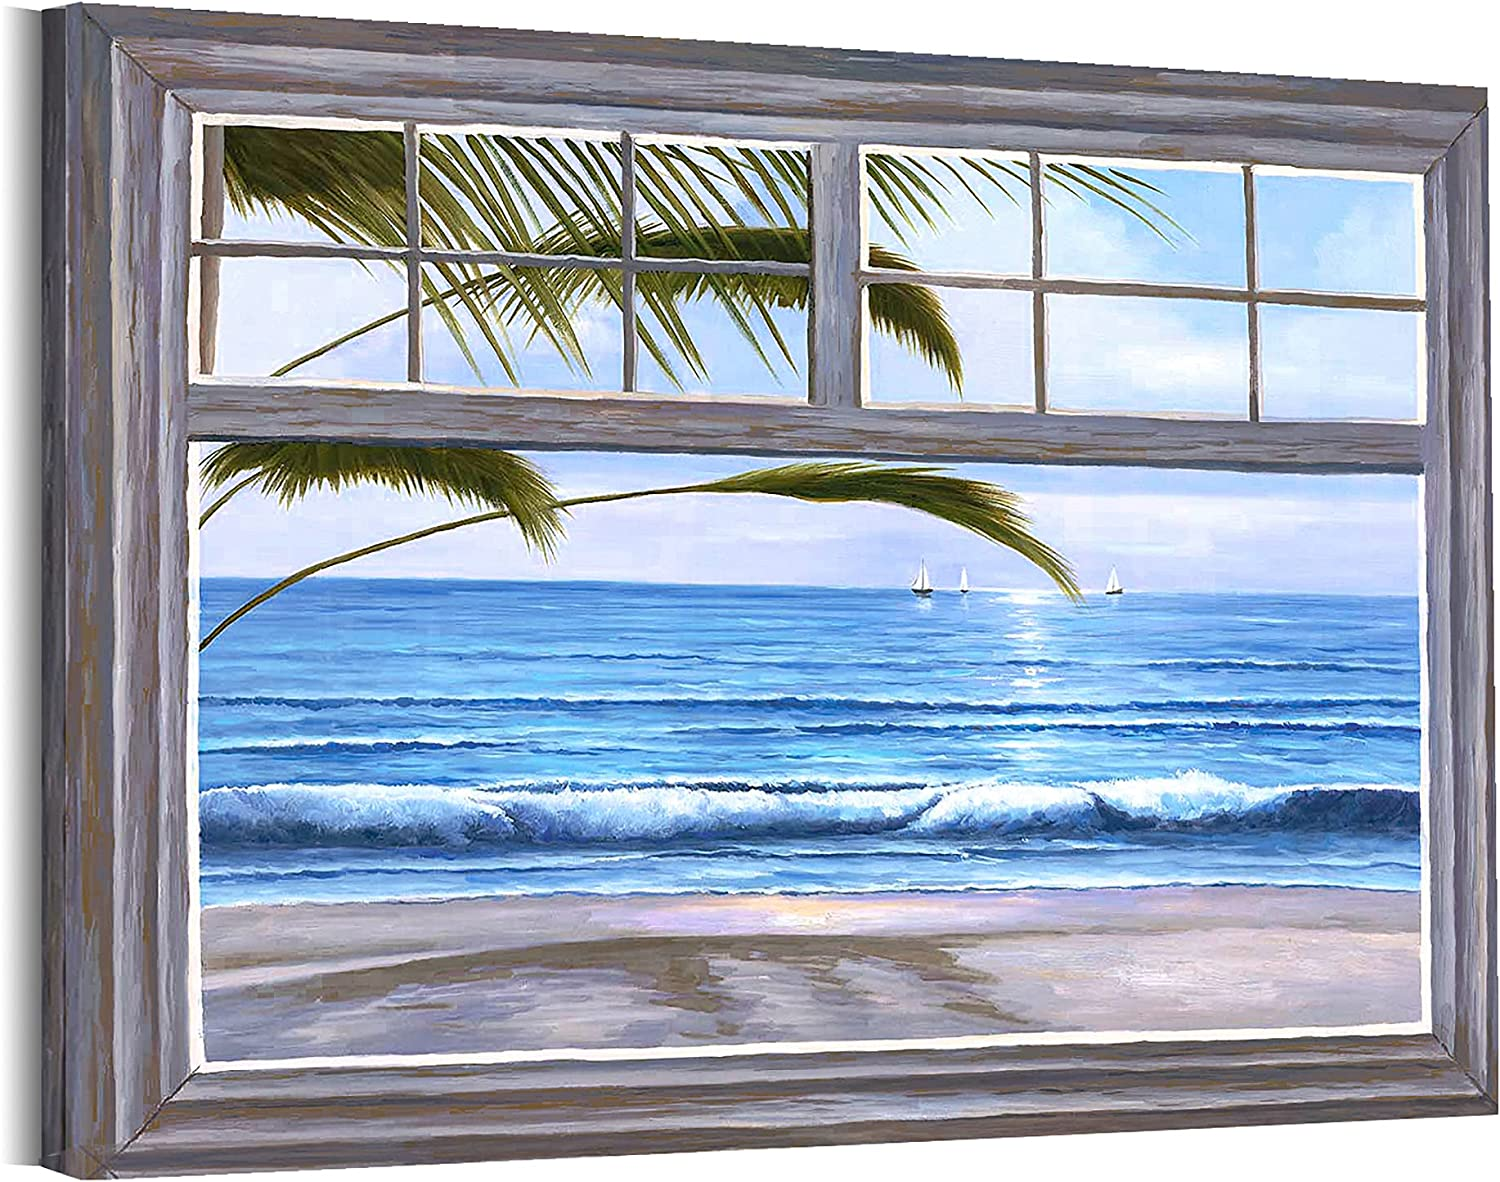 Beach Decor for Bathroom Wall Decorations 12x16inches with Frame Dark Brown Window Wall Art Blue Ocean with Sailboat Prints Wall Picture Bedroom Coastal Canvas Artwork Green Leaf Living Room Decor Painting